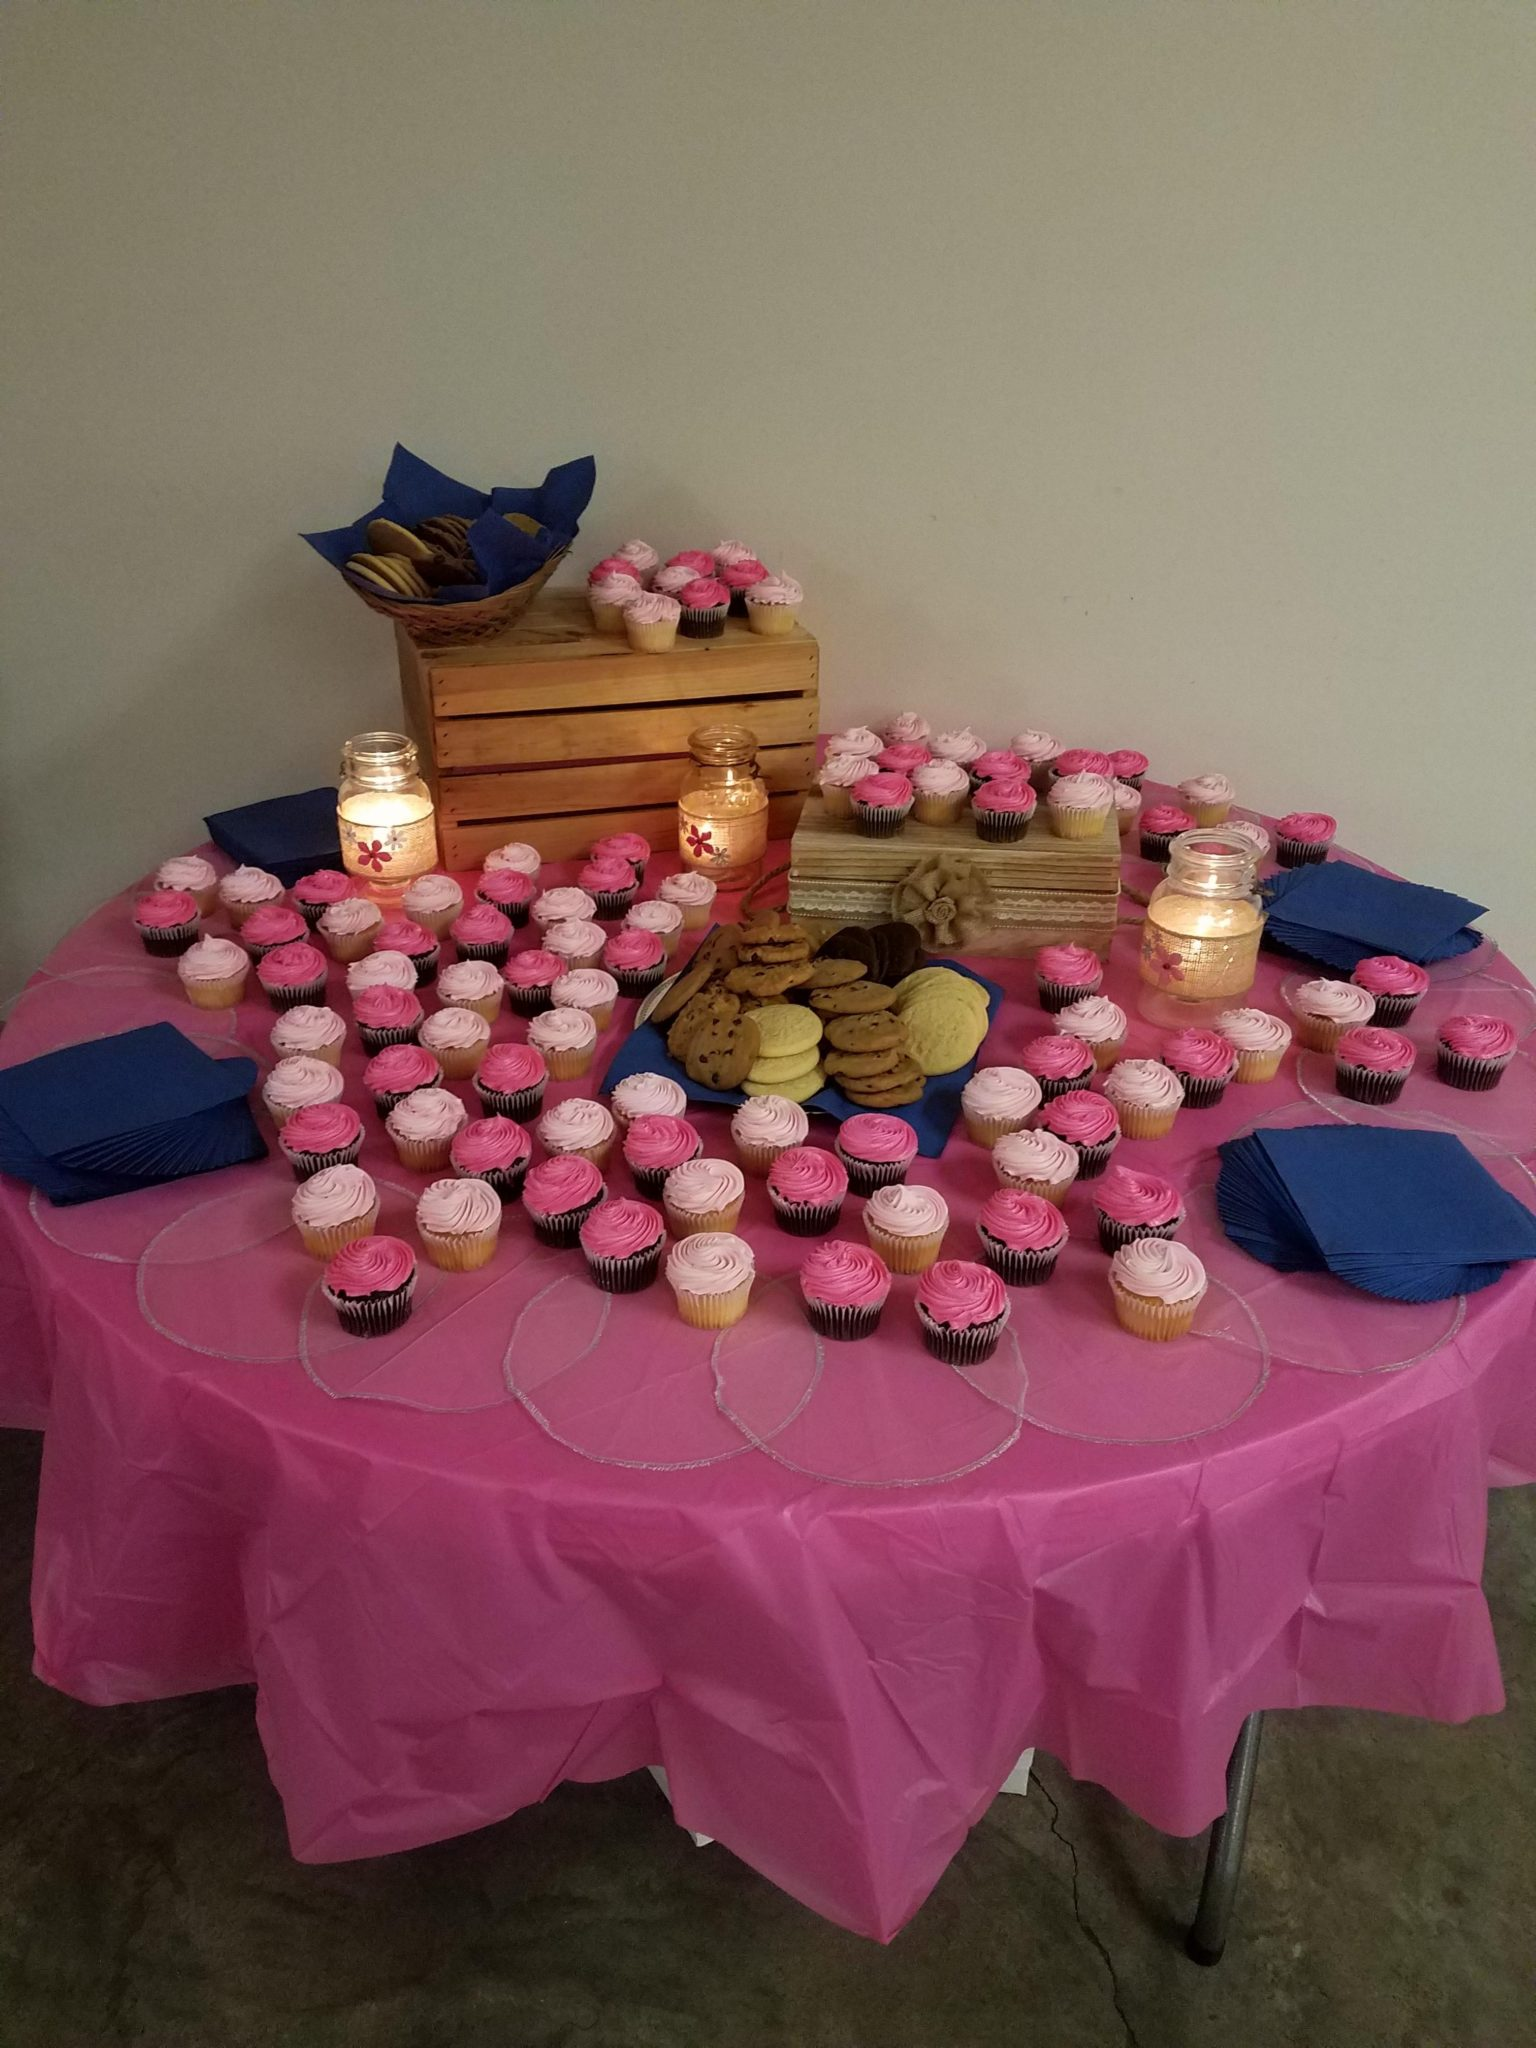 A collection of cookies and pink cupcakes sit on a table